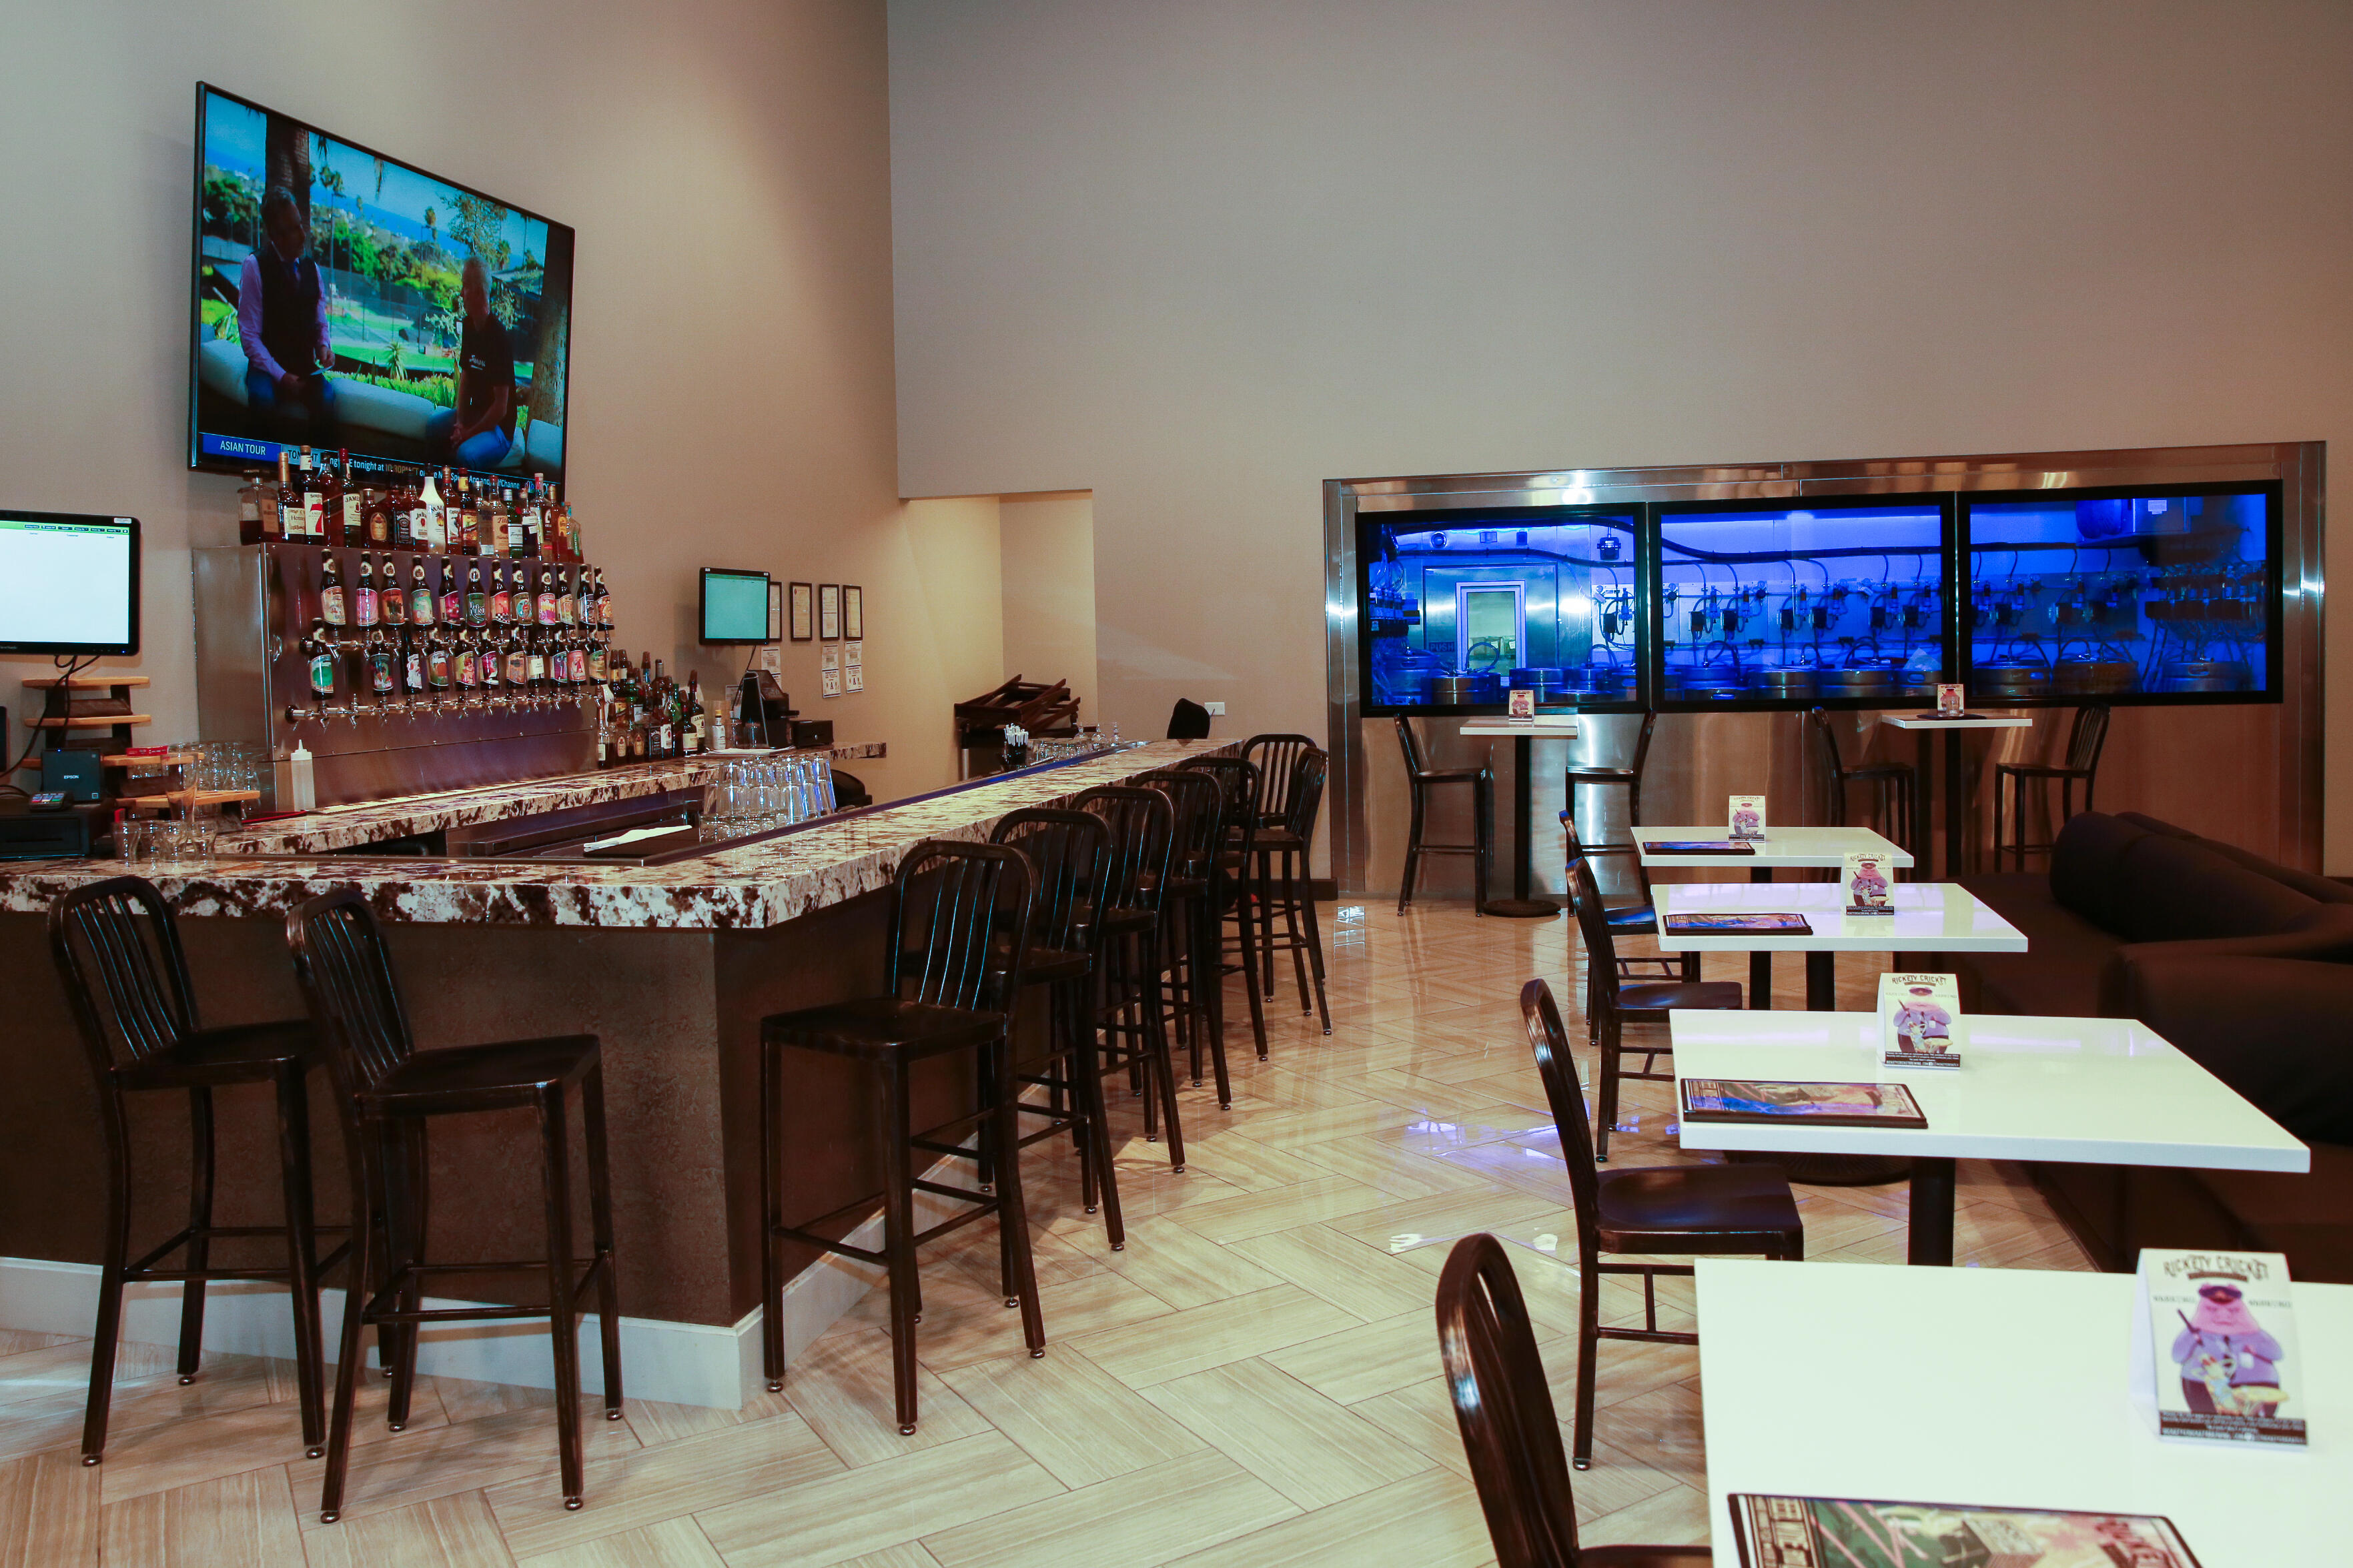 An adjacent bar serves cannabis-infused beverages as well. Planet 13 is open 24 hours a day.